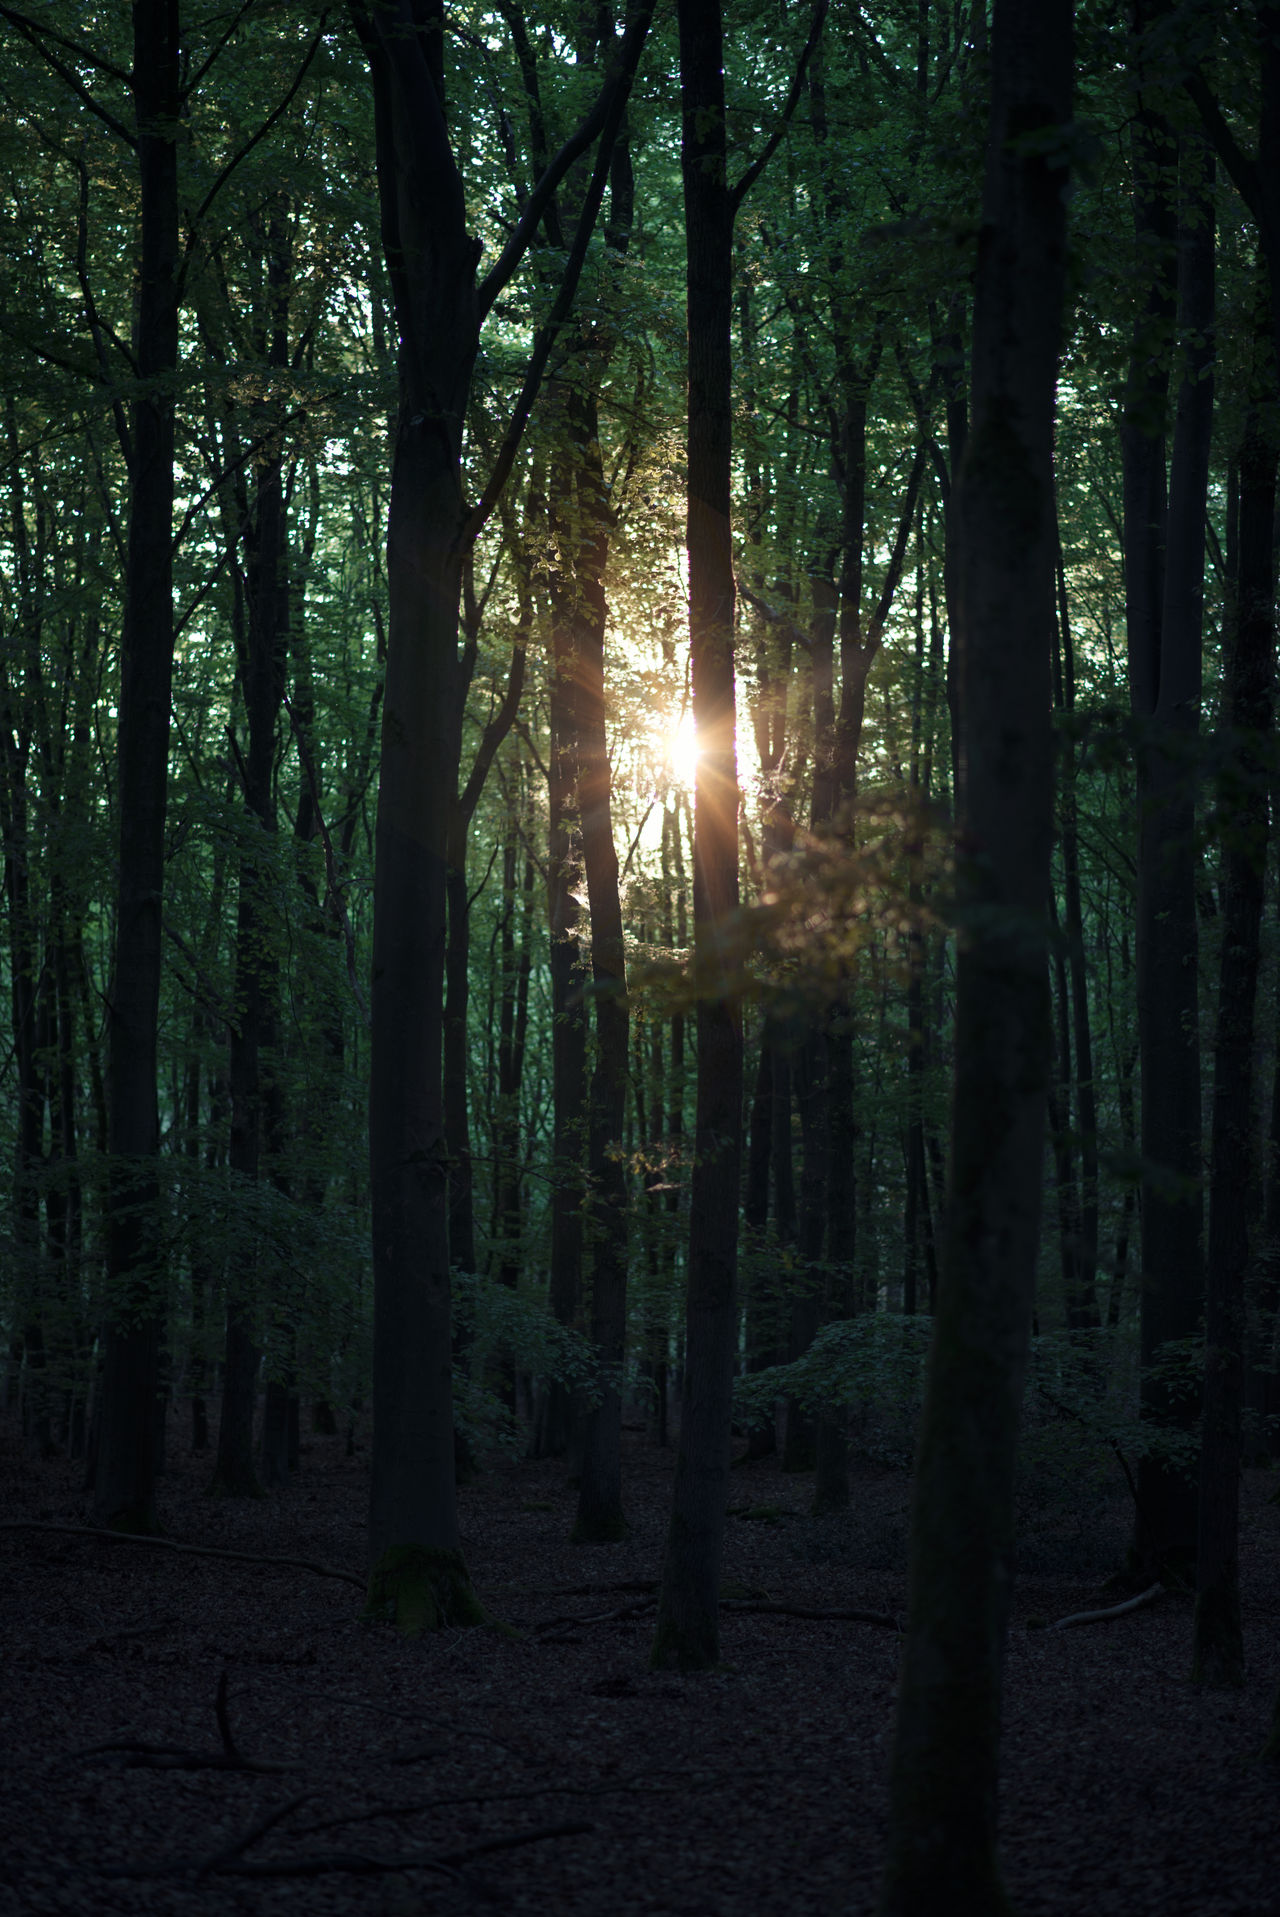 Beauty In Nature Day Forest Growth Nature No People Outdoors Scenics Sun Sunlight Tranquil Scene Tranquility Tree Tree Trunk